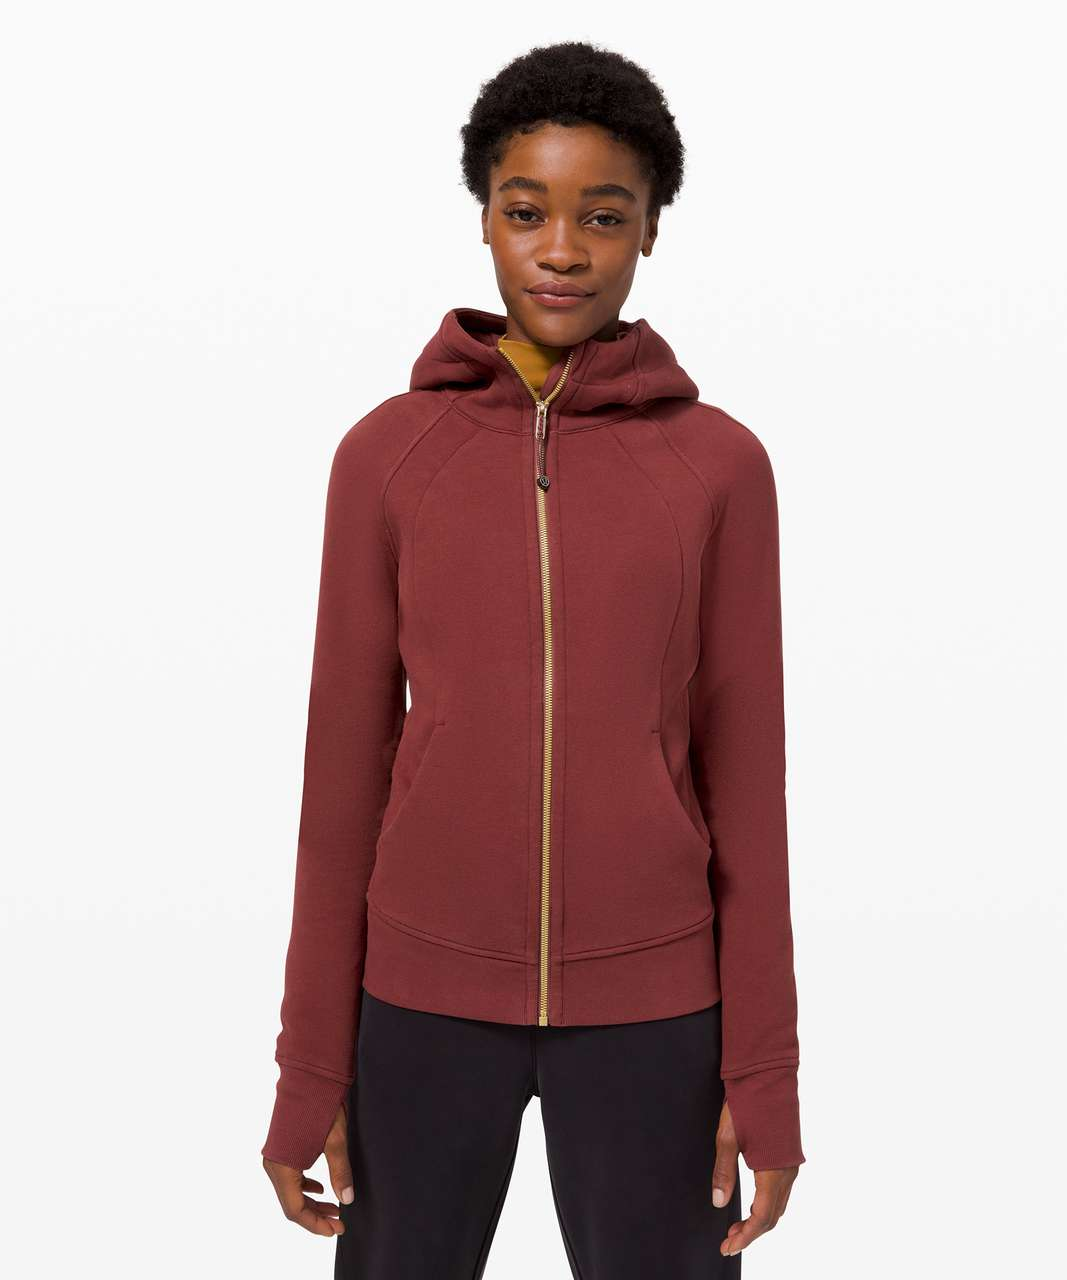 Lululemon Scuba Hoodie *Light Cotton Fleece - Savannah / Gold